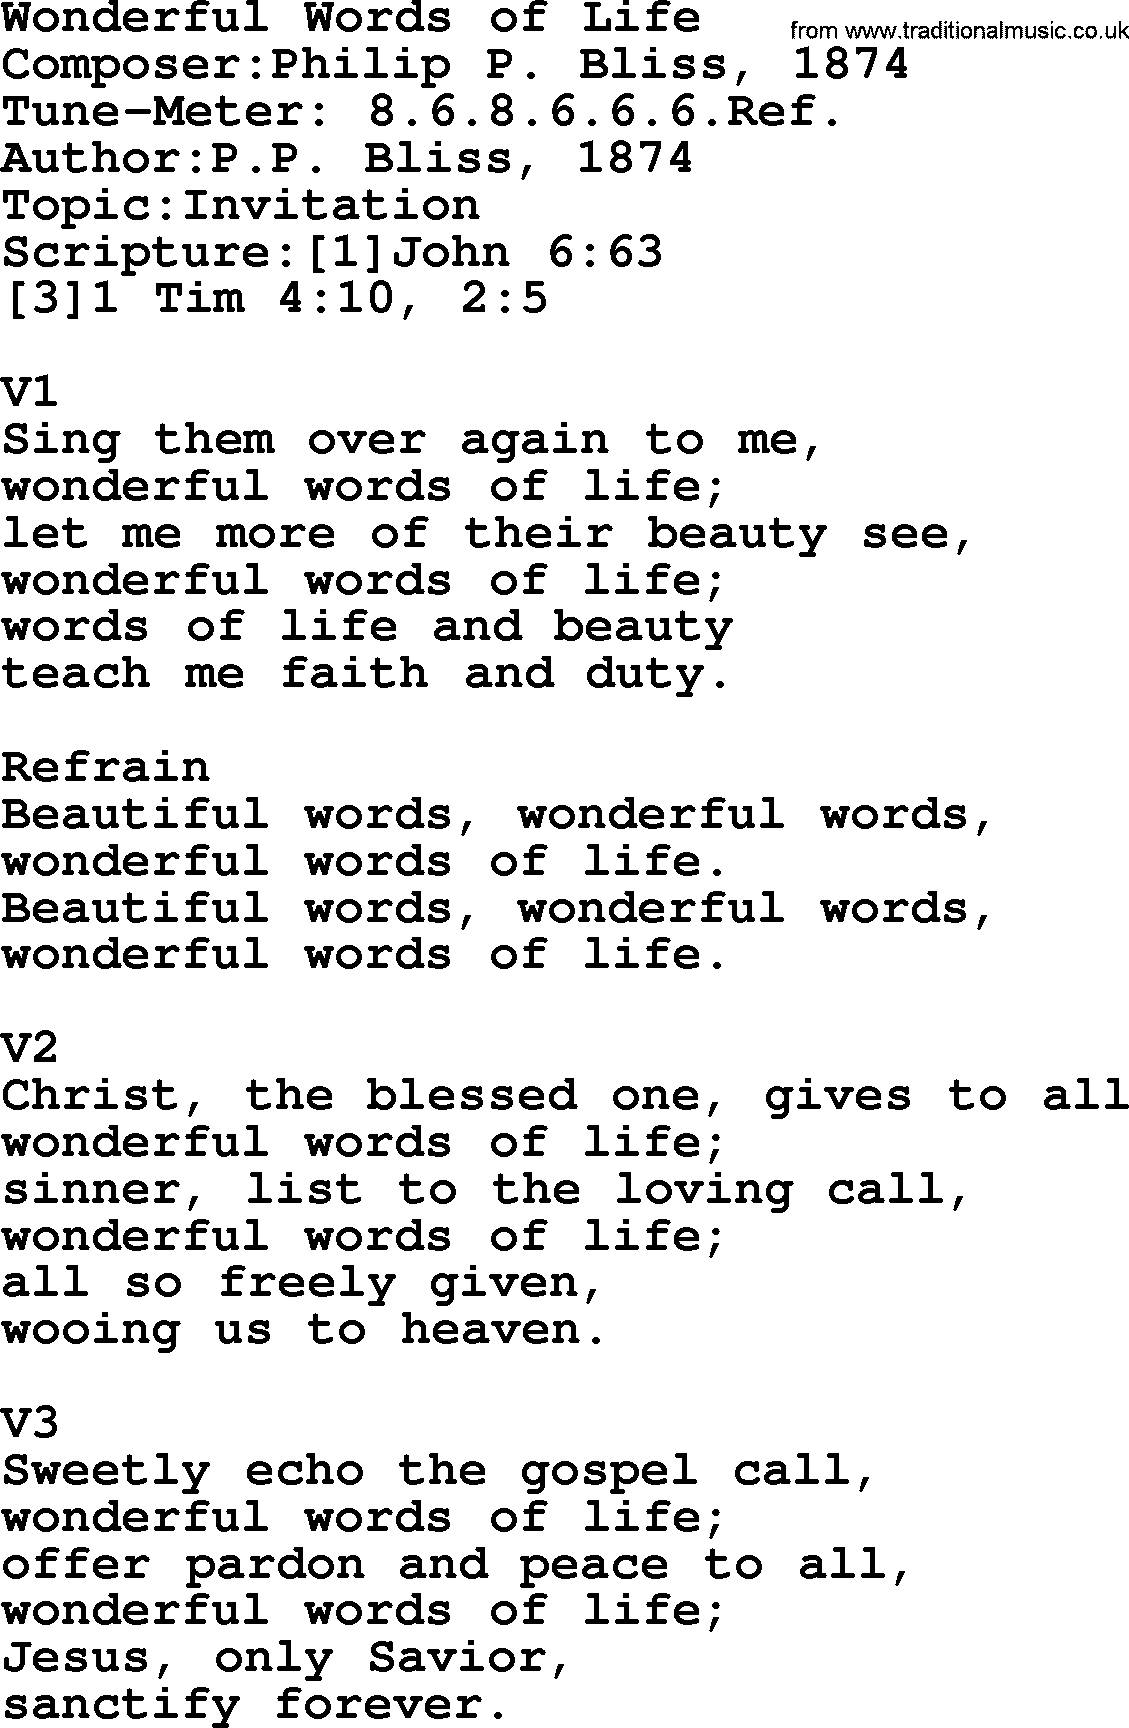 Adventist Hymn: Wonderful Words Of Life - Christian Song lyrics, with PDF